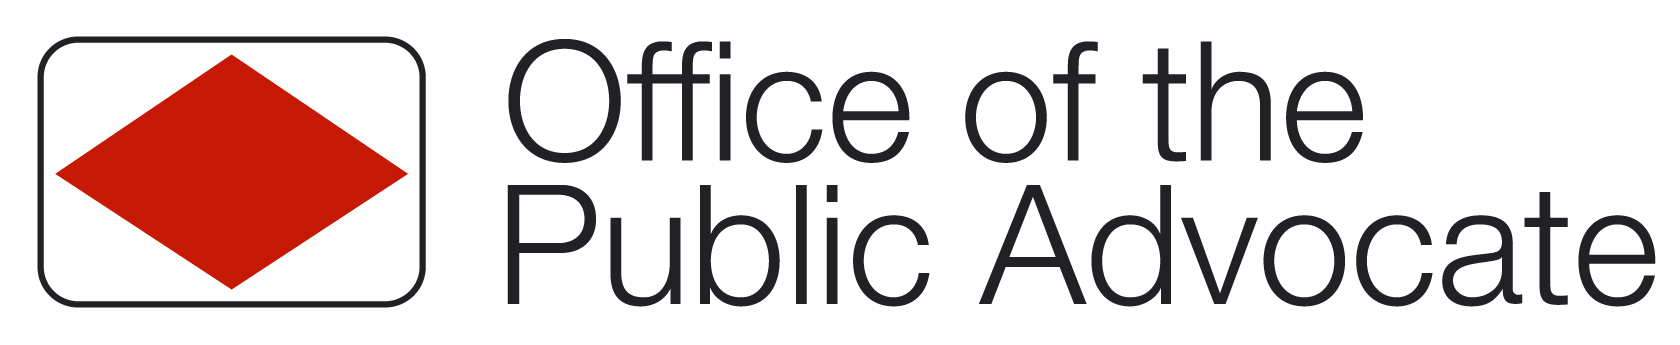 Office of the Public Advocate